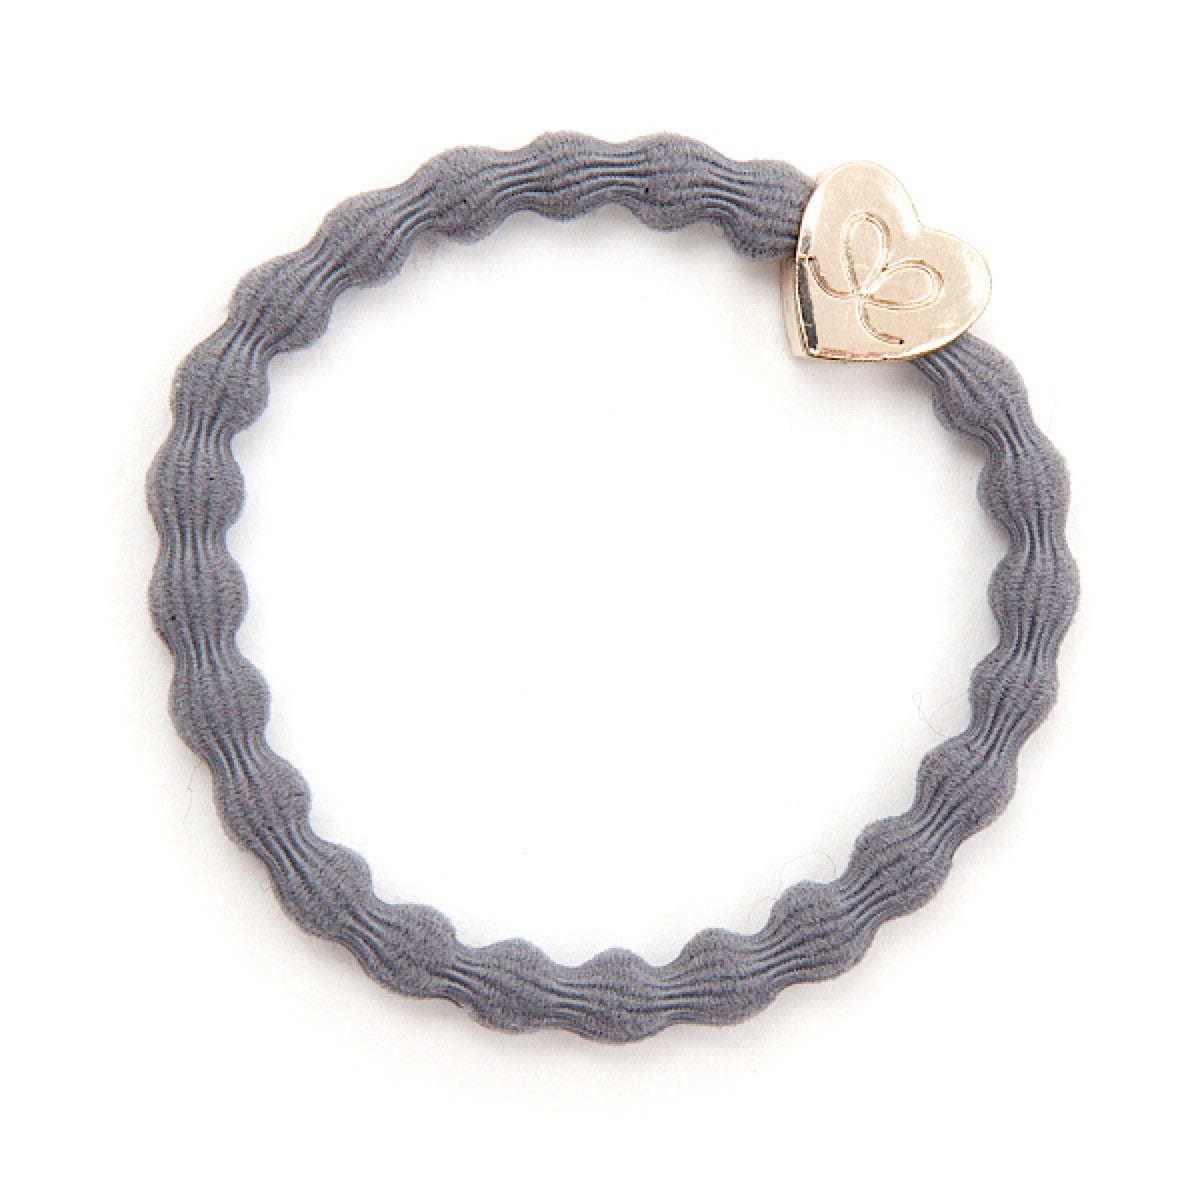 Storm Grey/Heart Bangle Band | More Than Just at Gift | Narborough Hall